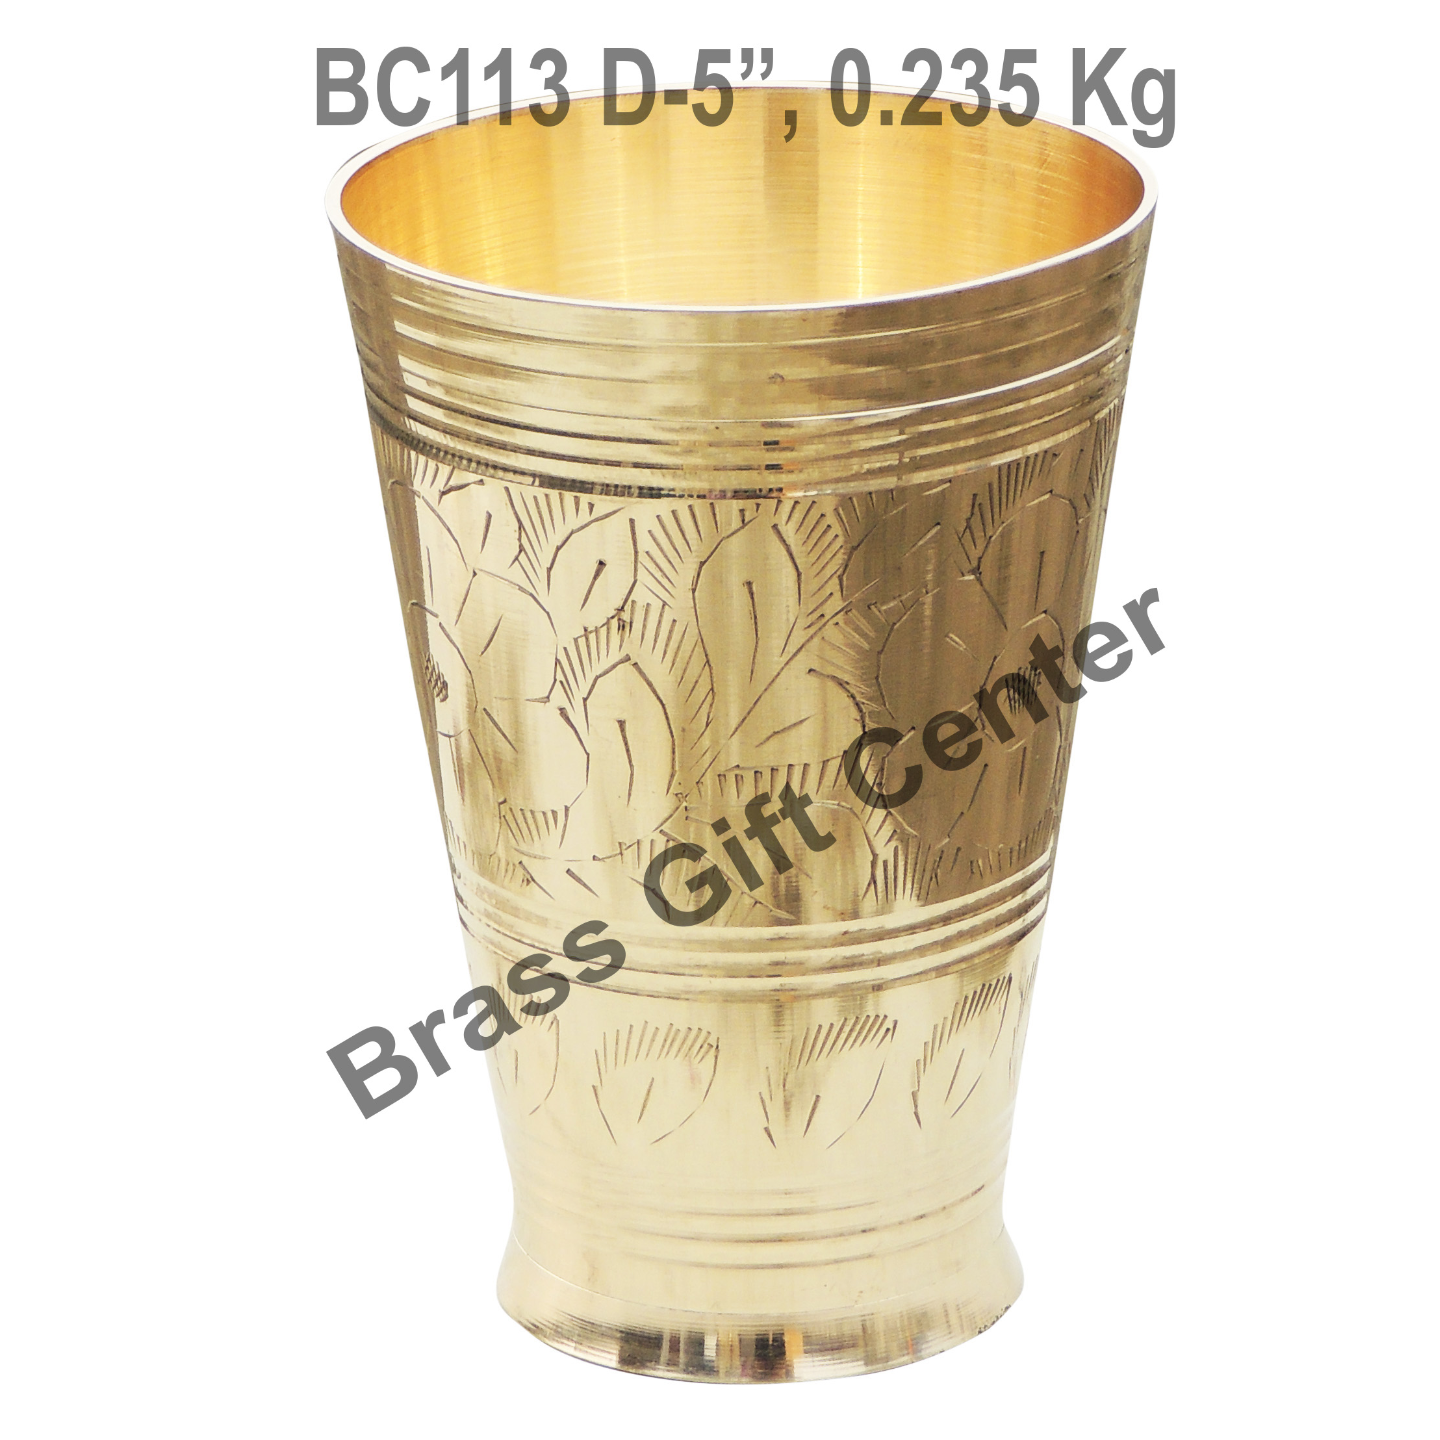 Lassi Glass Brass - 450 ml BC113 D